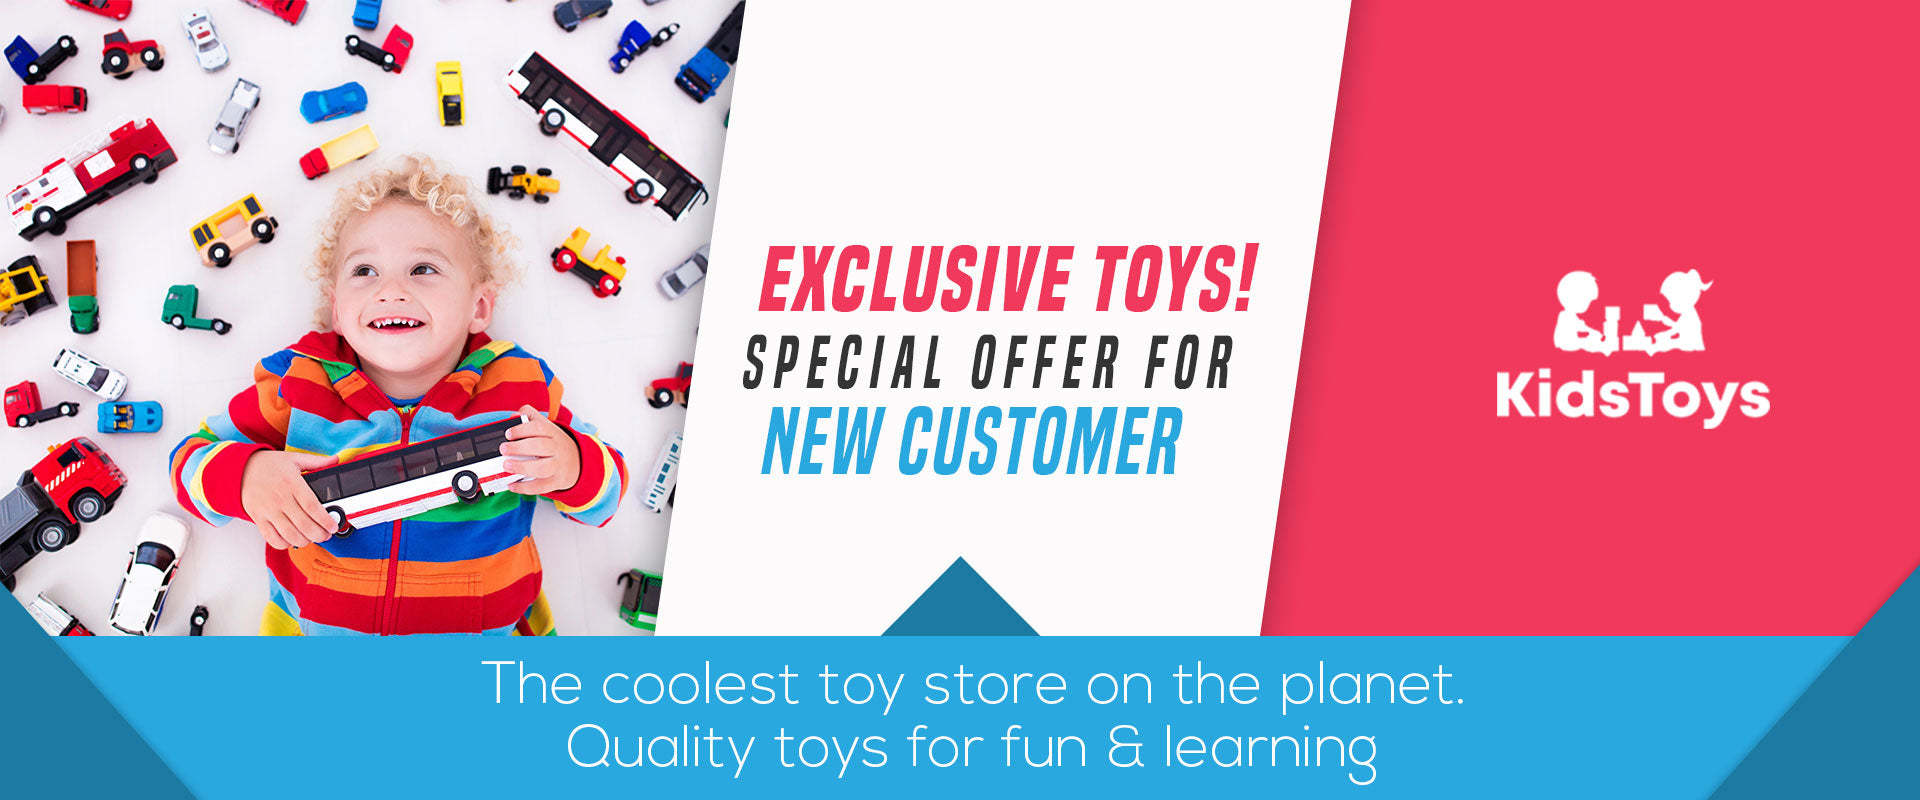 Exclusive Toys for Kids